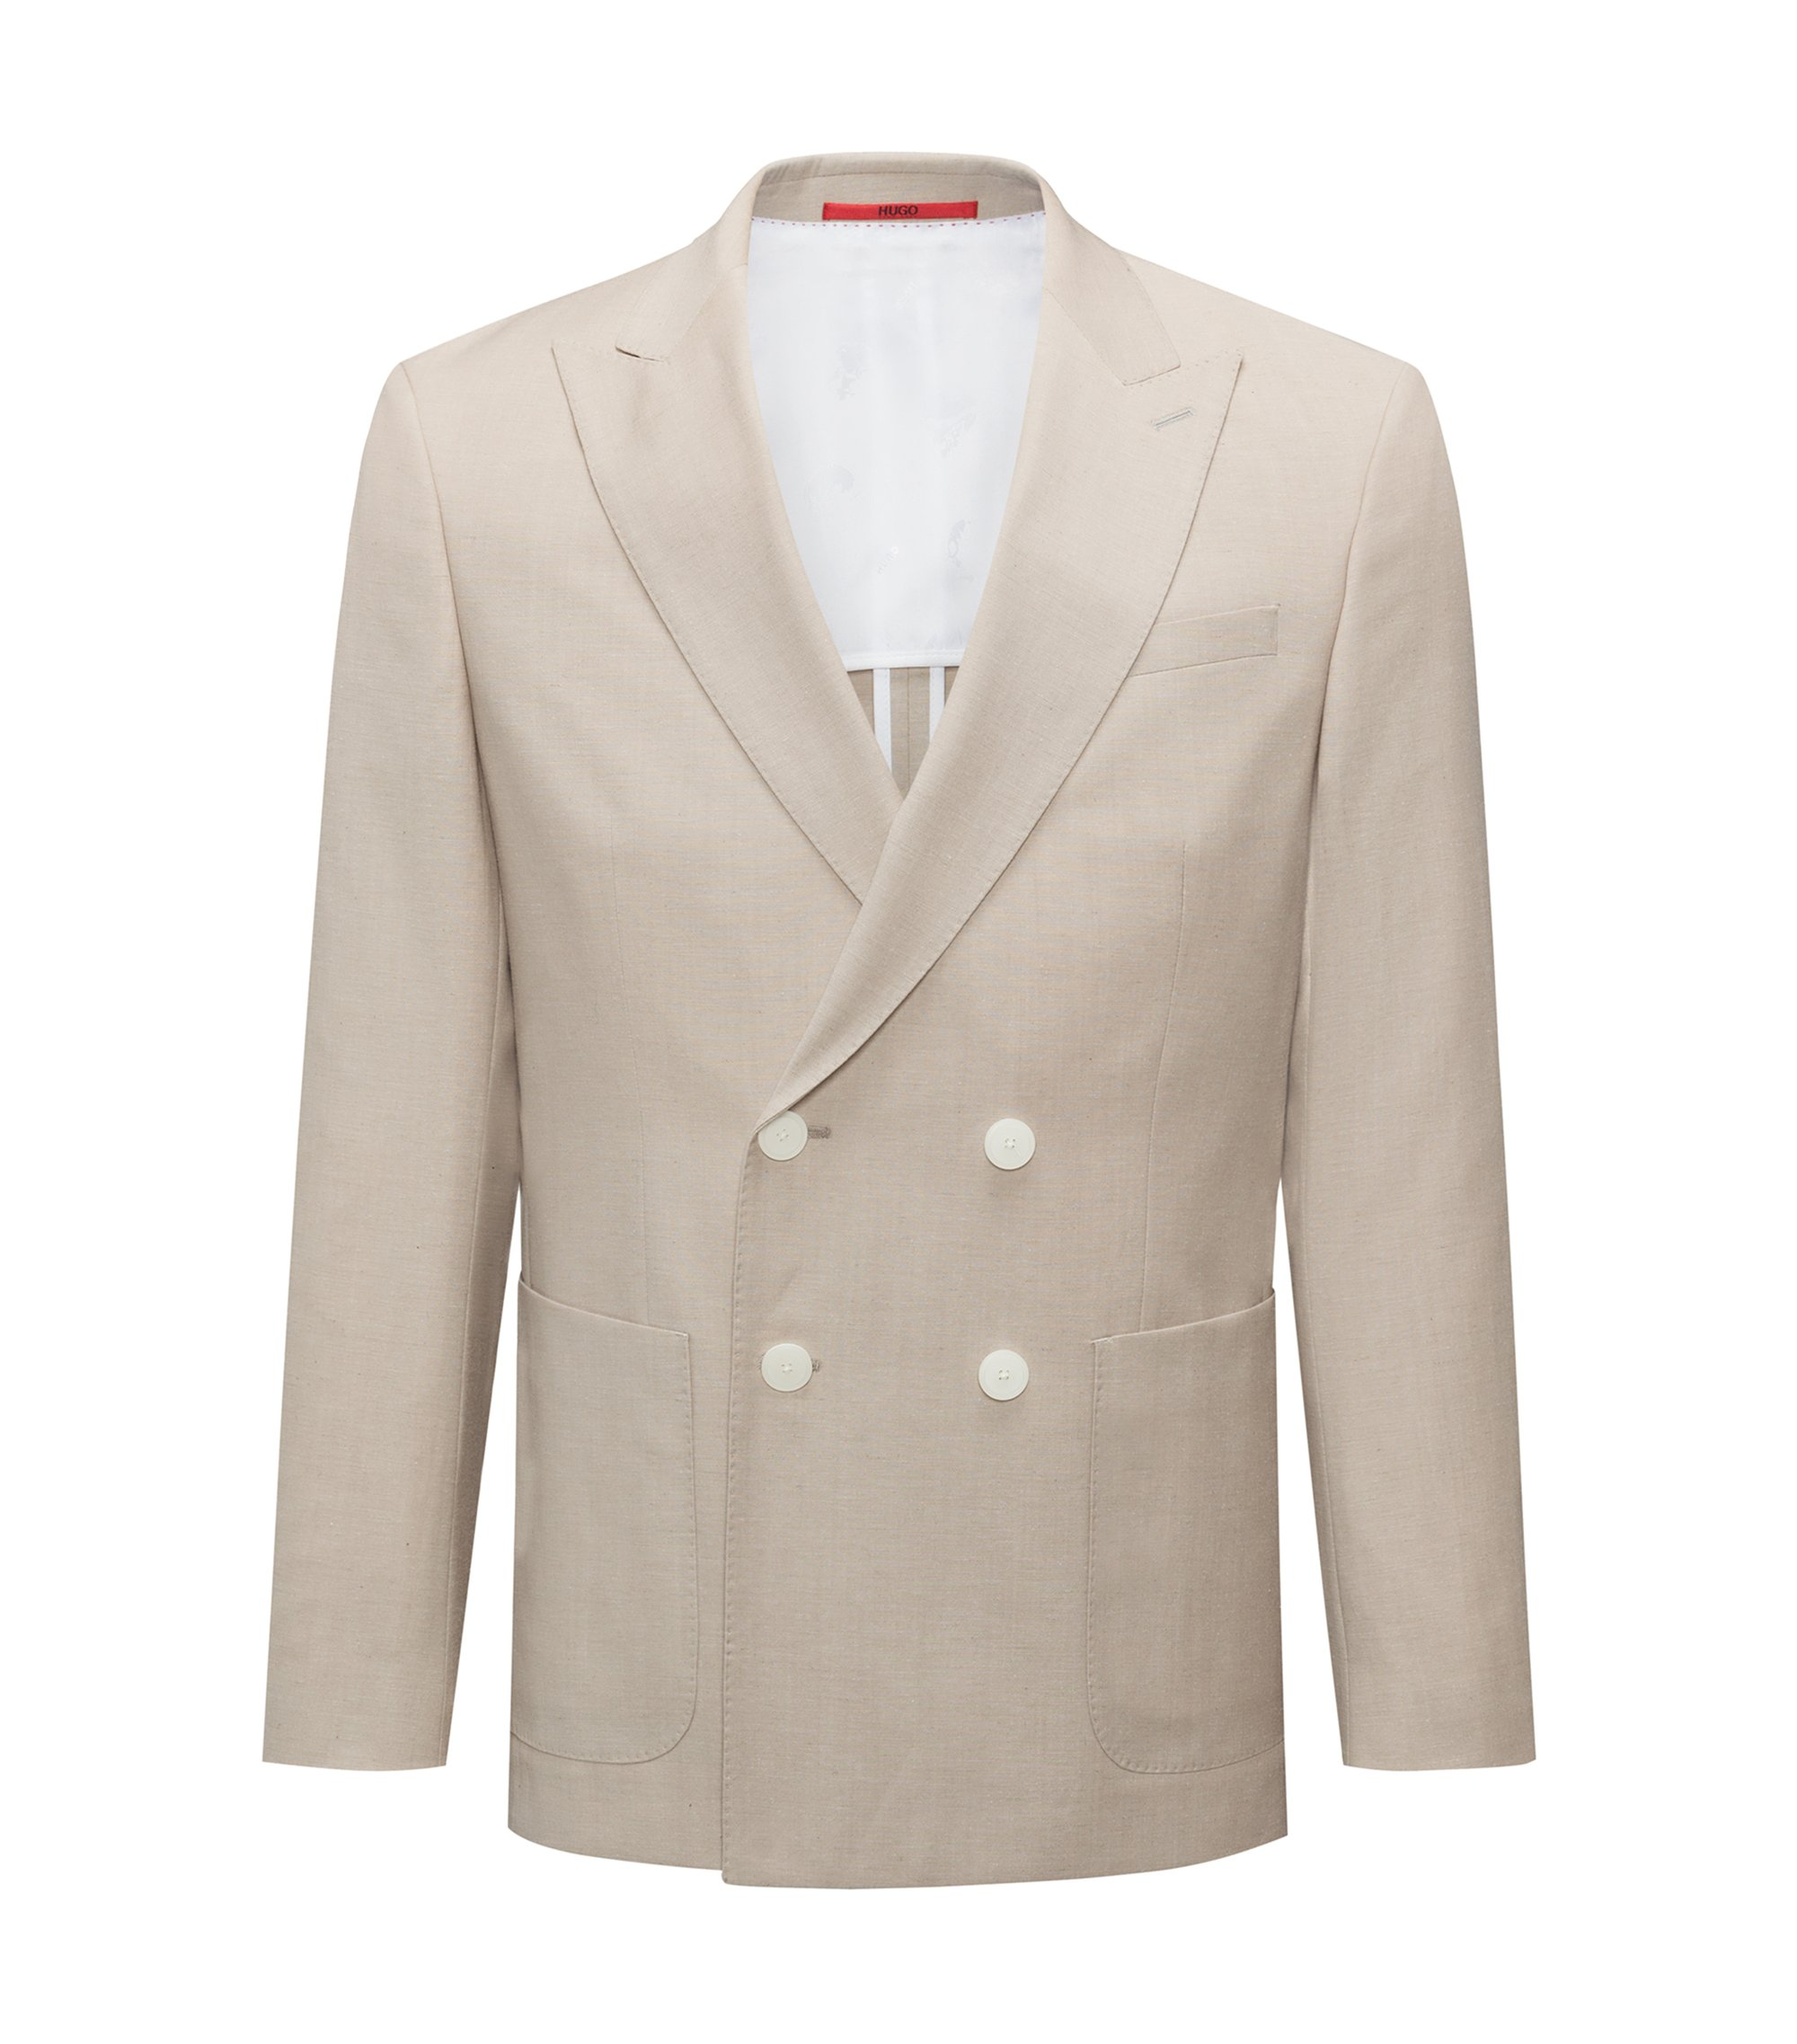 Slim-fit double-breasted jacket in a structured wool blend, Beige